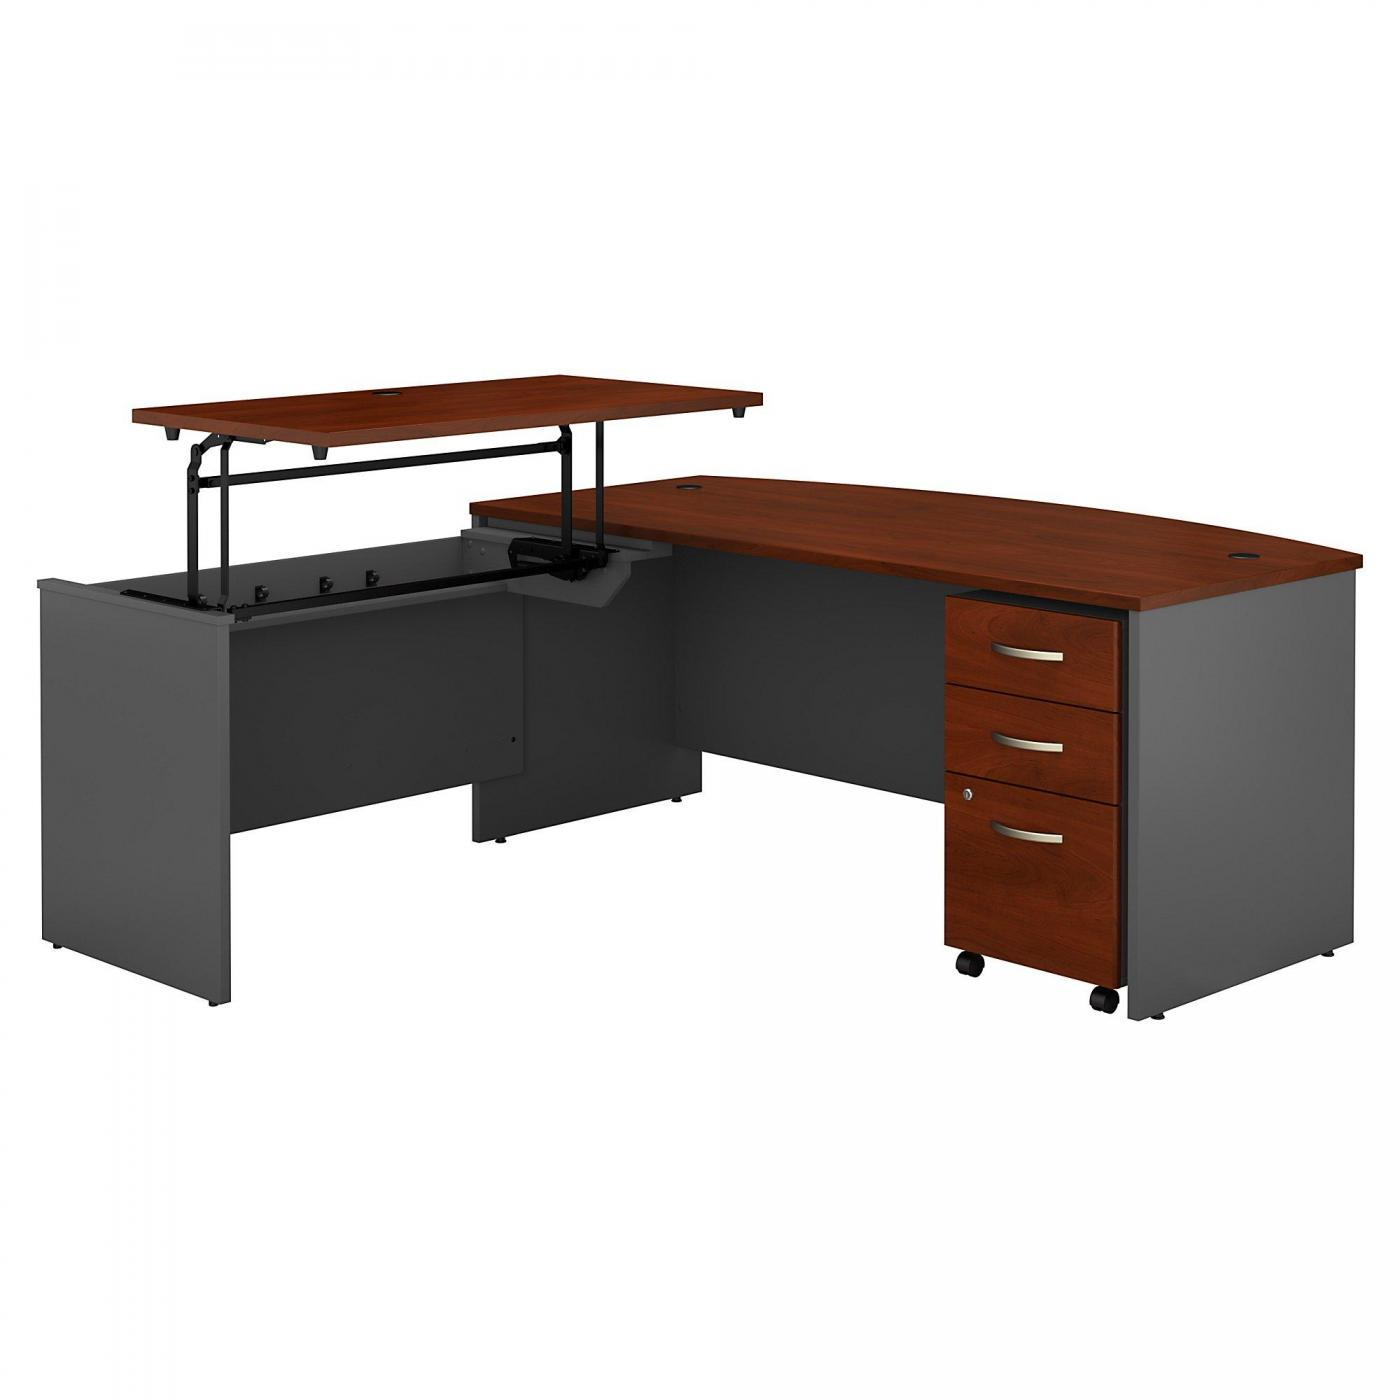 <font color=#c60><b>BUSH BUSINESS FURNITURE SERIES C 72W X 36D 3 POSITION BOW FRONT SIT TO STAND L SHAPED DESK WITH MOBILE FILE CABINET. FREE SHIPPING</font></b>